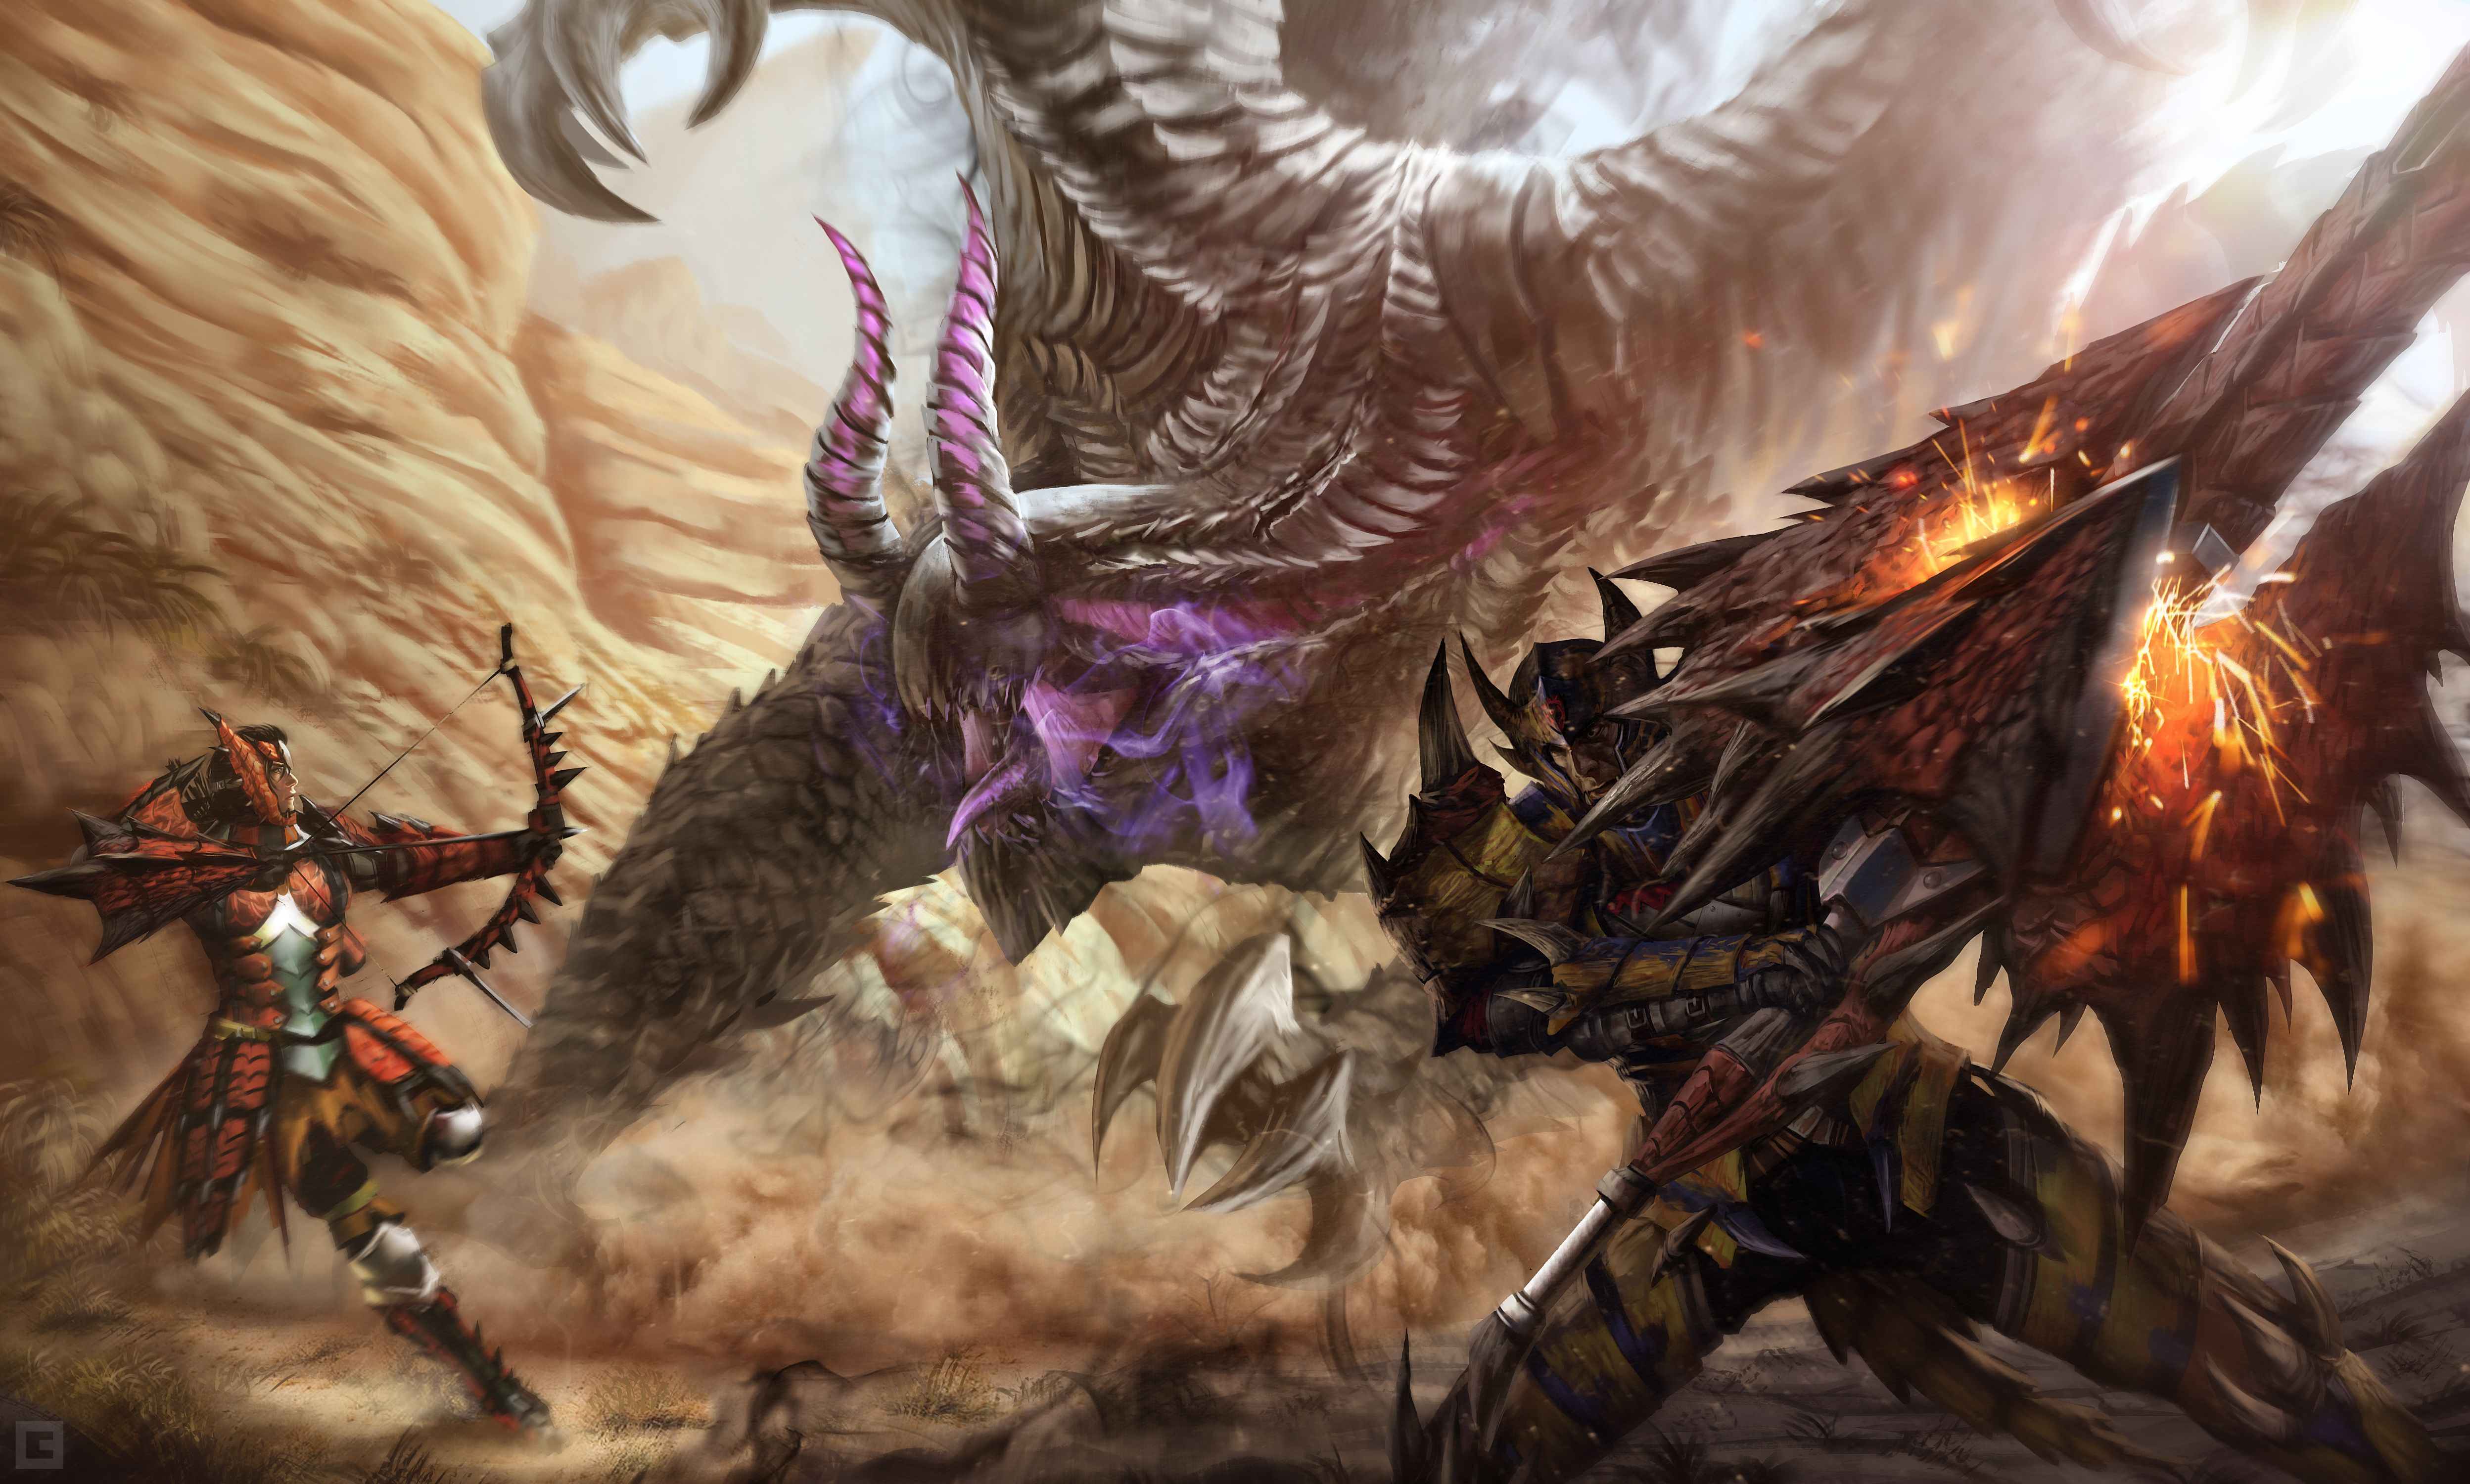 Video Game Monster Hunter 4 Ultimate Wallpaper   Monster hunter     Video Game Monster Hunter 4 Ultimate Wallpaper